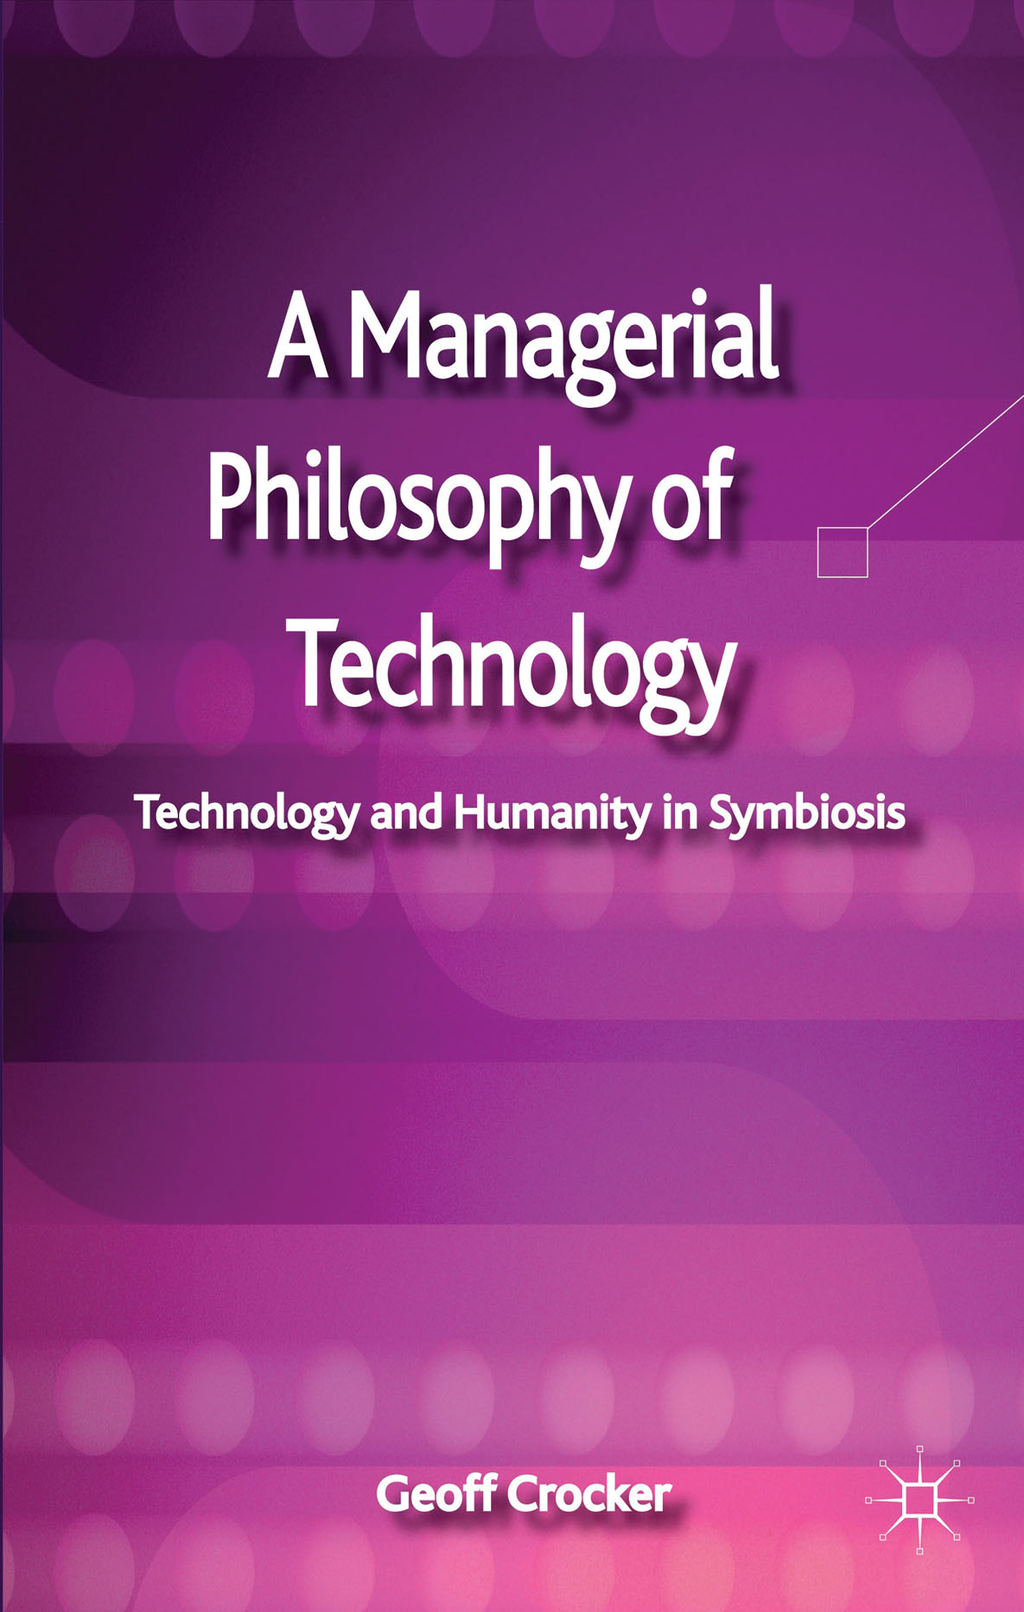 A Managerial Philosophy of Technology